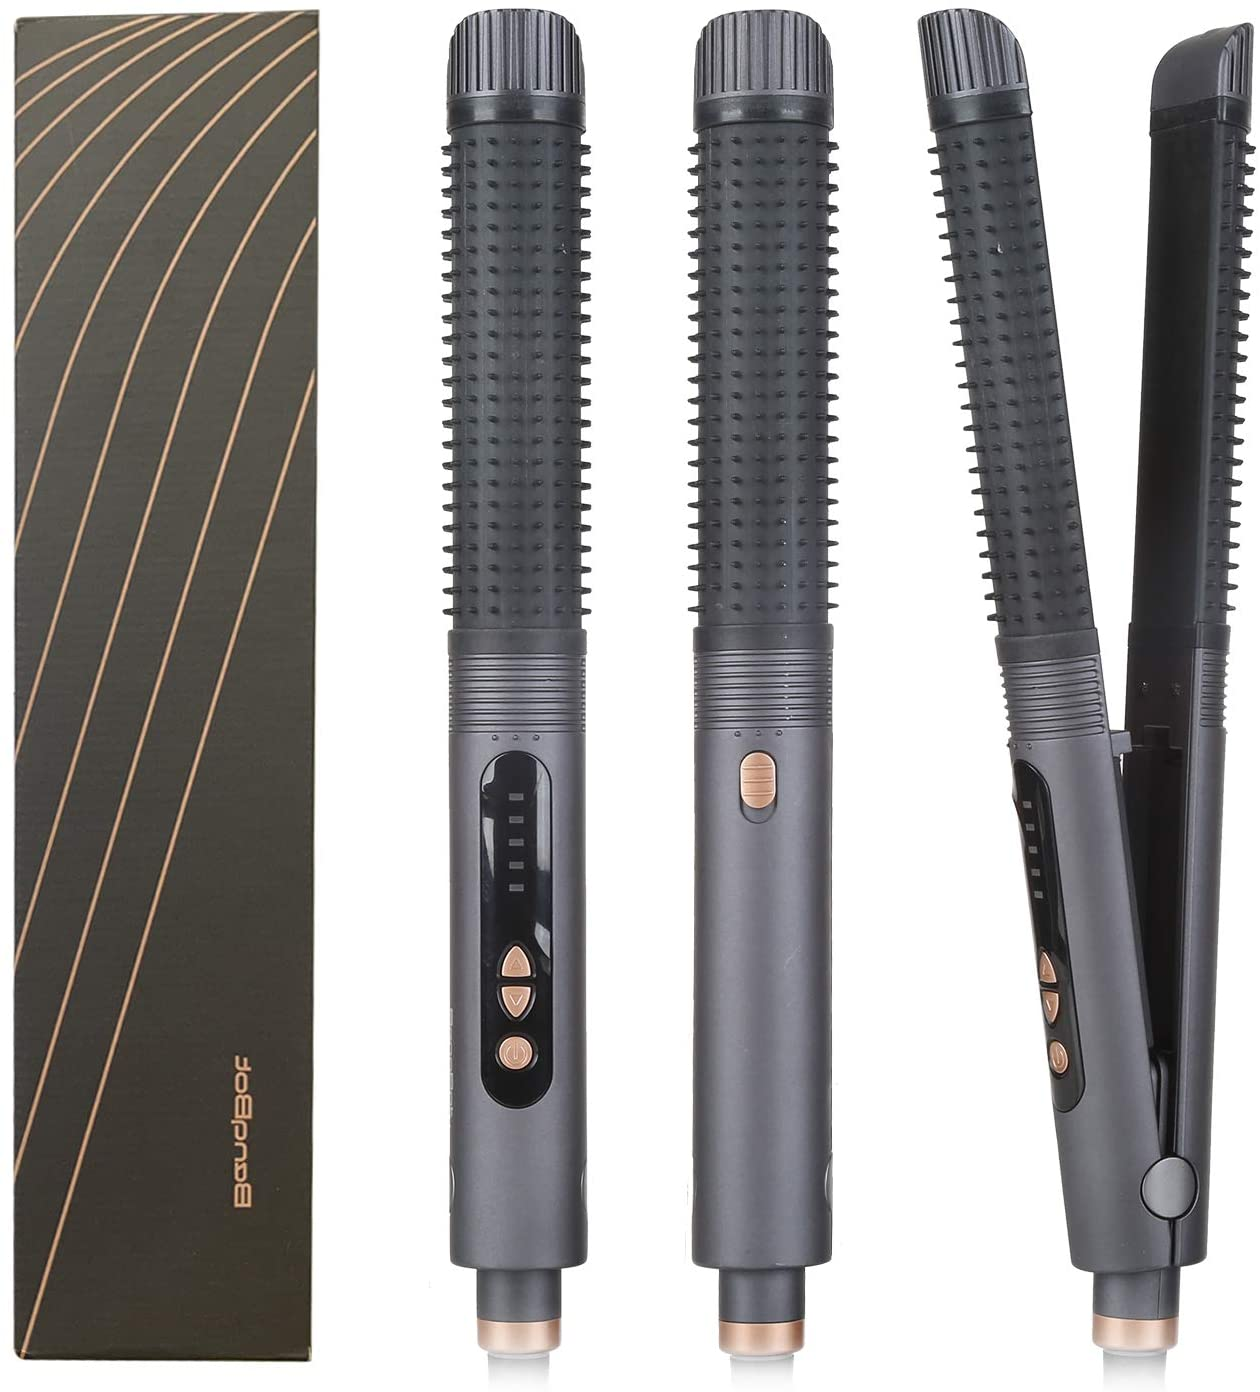 BenqBot Ceramic Flat Iron Hair Straightener & Curler-Comb Fuction, Professional Salon Ceramic Flat Iron for Hair Styling: 3 in 1 Flat Iron for All Hair Types with Adjustable Temp, High Heat 266℉-392℉